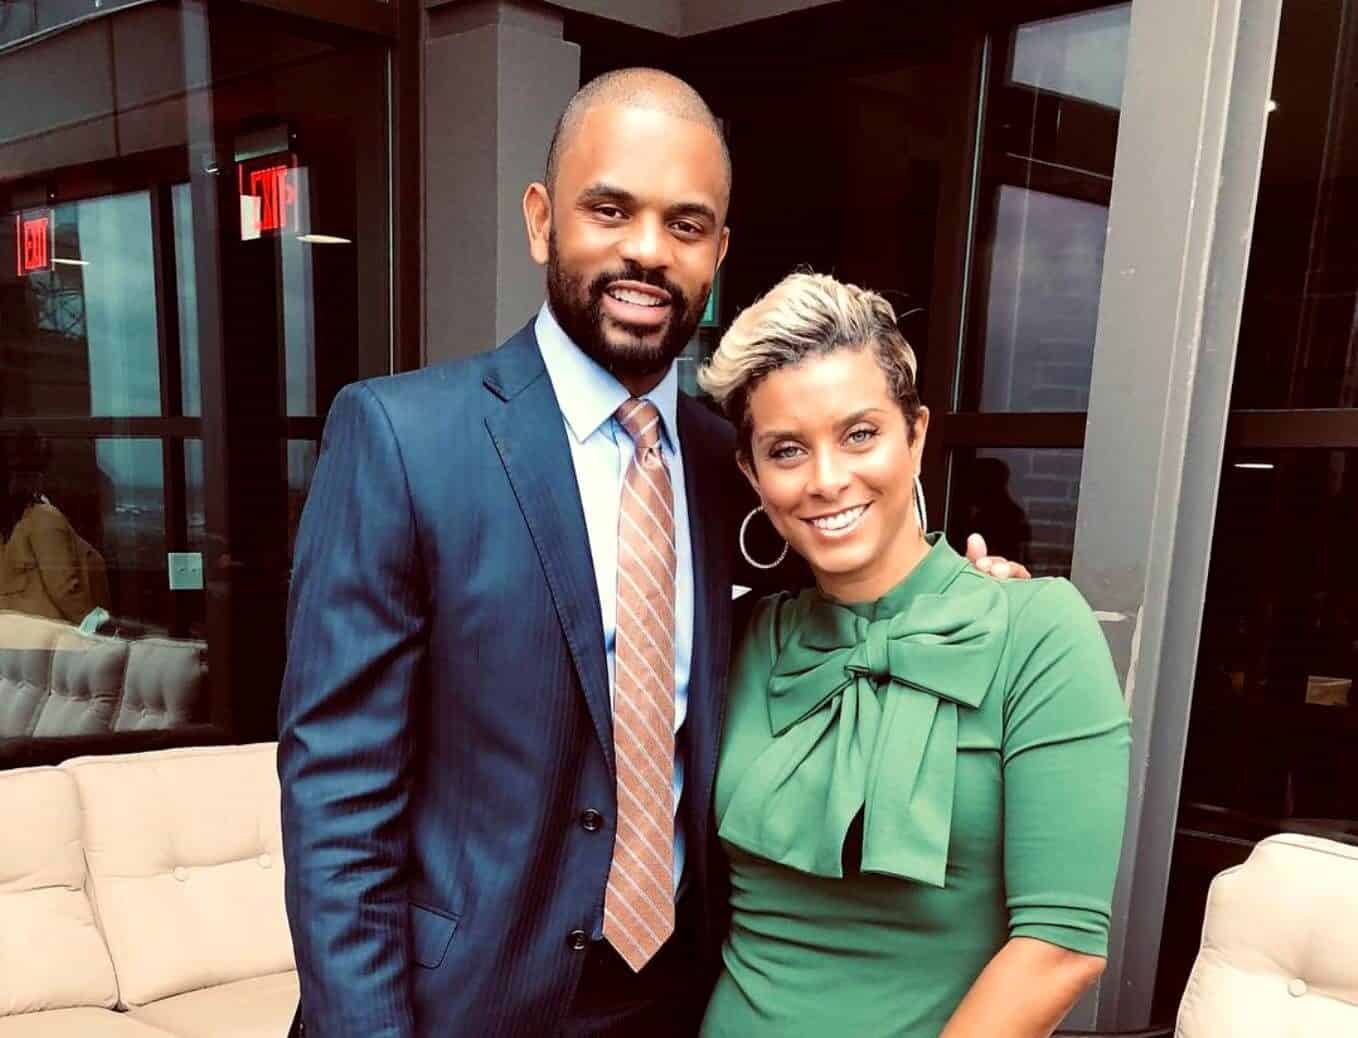 VIDEO: RHOP Stars Robyn Dixon and Juan Dixon Are Engaged! See a Video of Juan's Sweet Proposal and Robyn's Engagement Ring